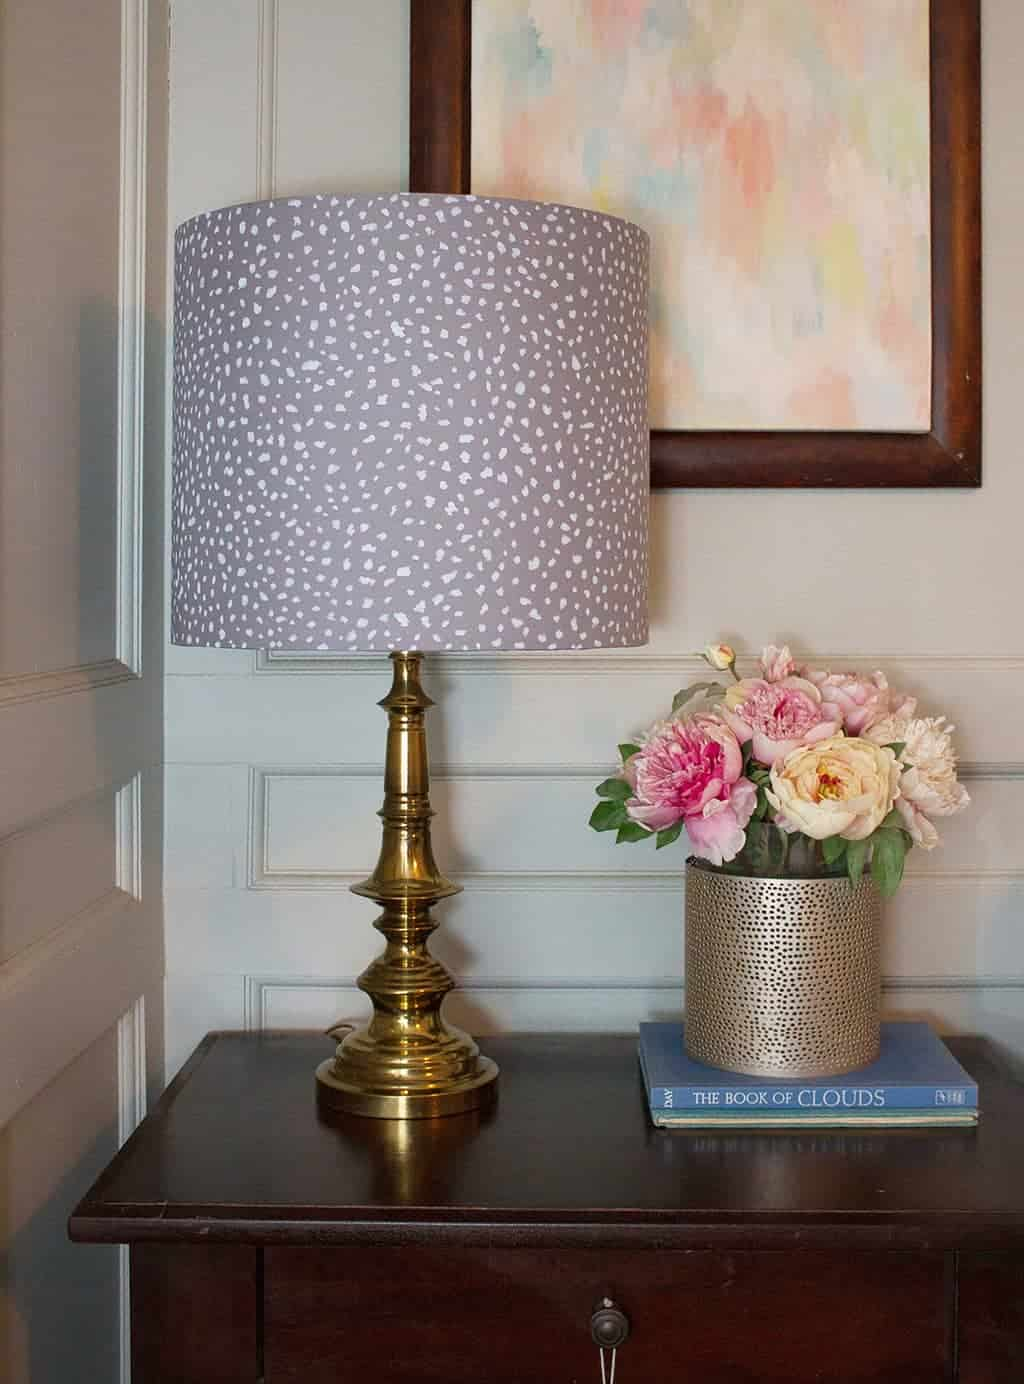 Make your own diy lamp shade from an i like that lamp kit audrey of oh so lovely blog shows you just how easy it is to make your aloadofball